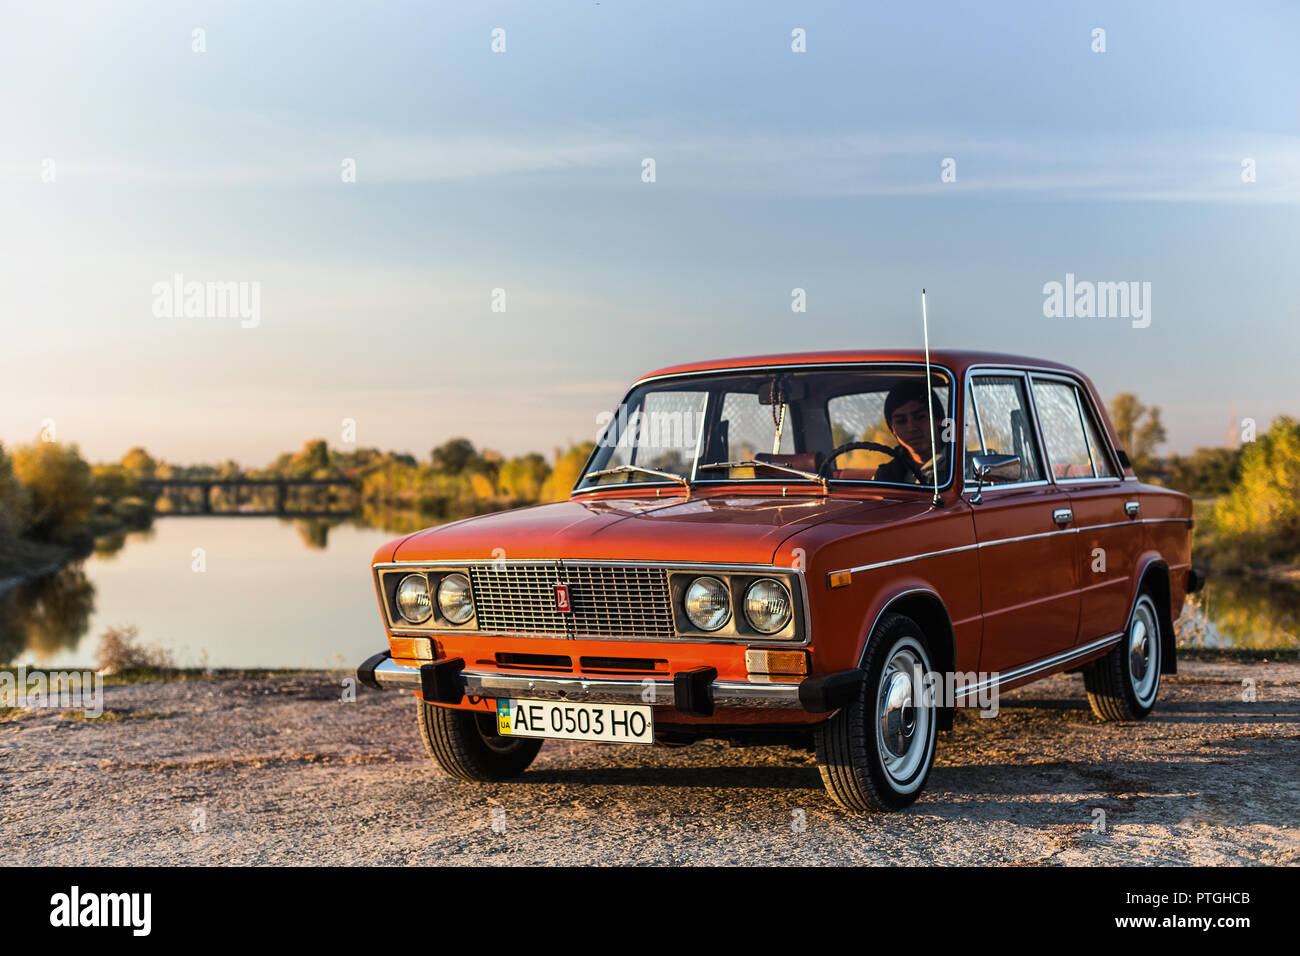 PERESHCHEPINO, UKRAINE - OCTOBER 12, 2014: Zhiguli VAZ 2106 original orange, released in the USSR in 70's. Car parked on the side of the road in the m Stock Photo